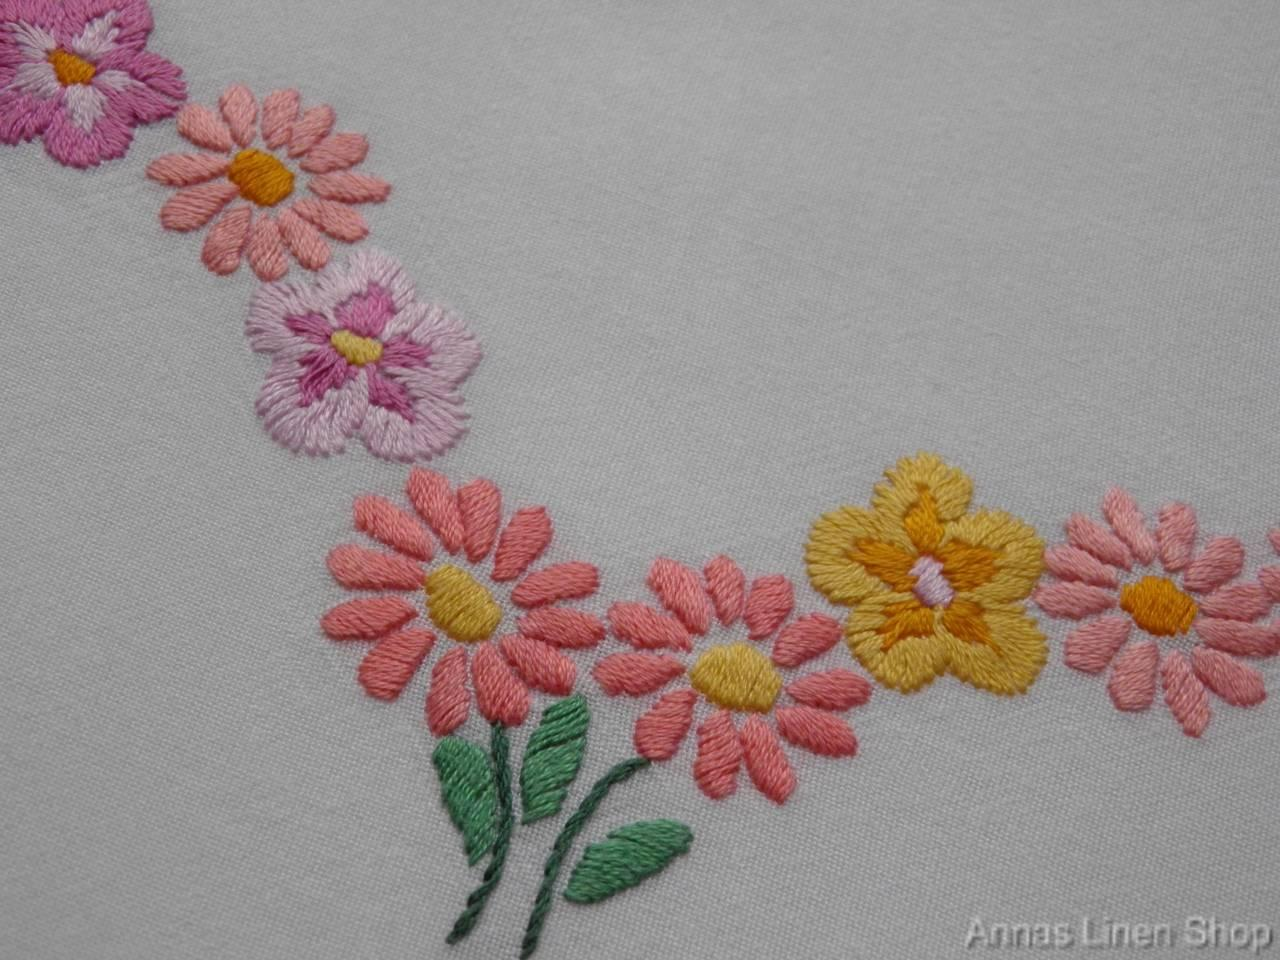 Vintage tablecloth hand embroidered daisy aster flowers